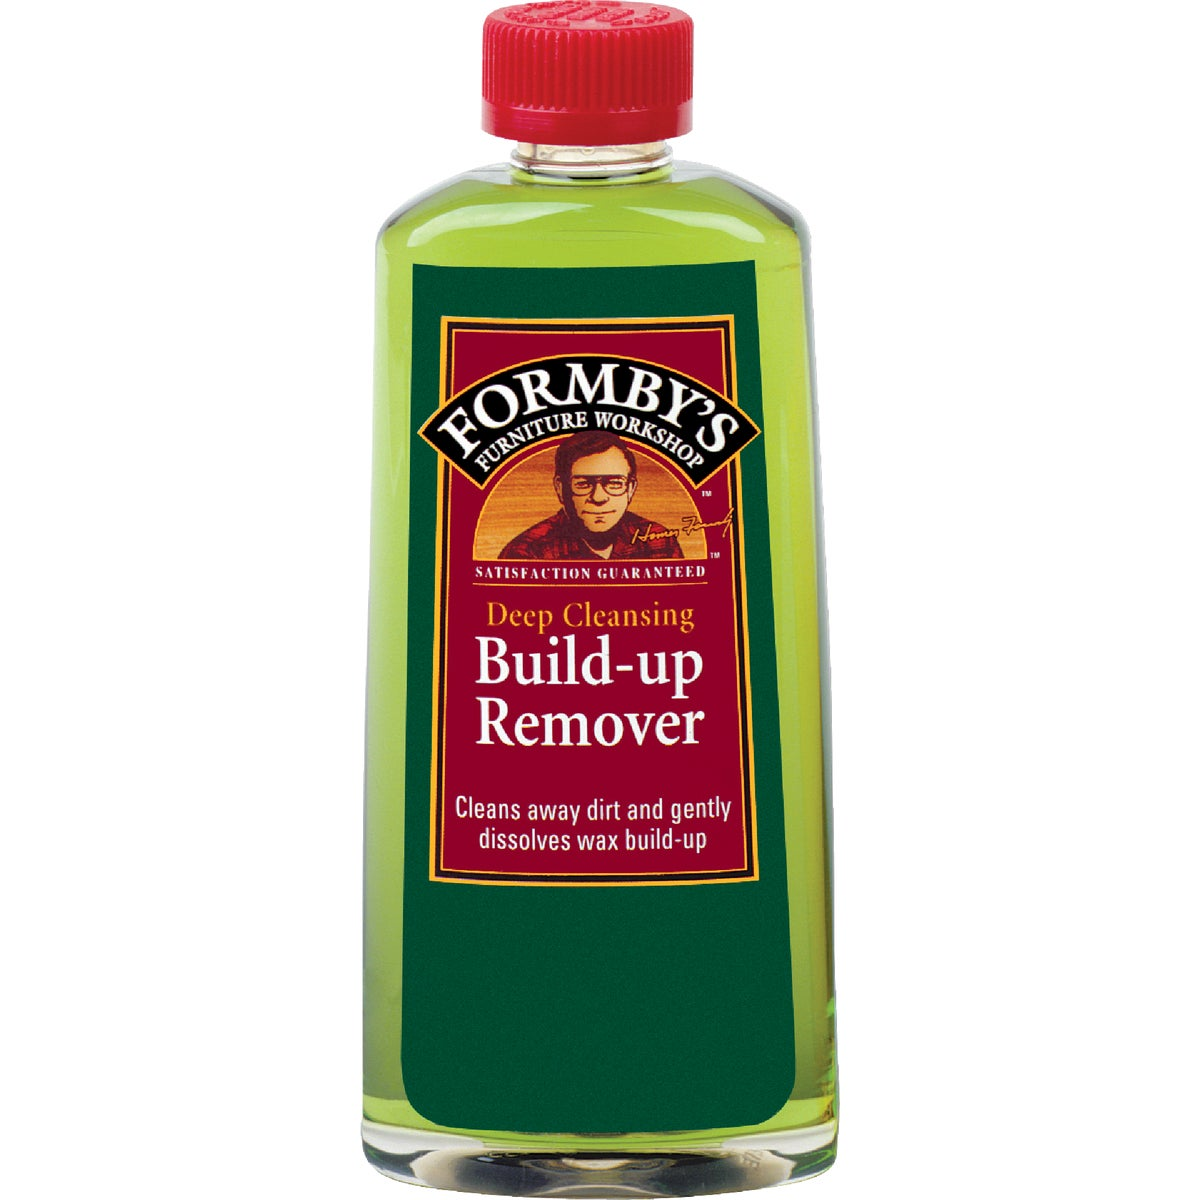 8Oz Build-Up Remover